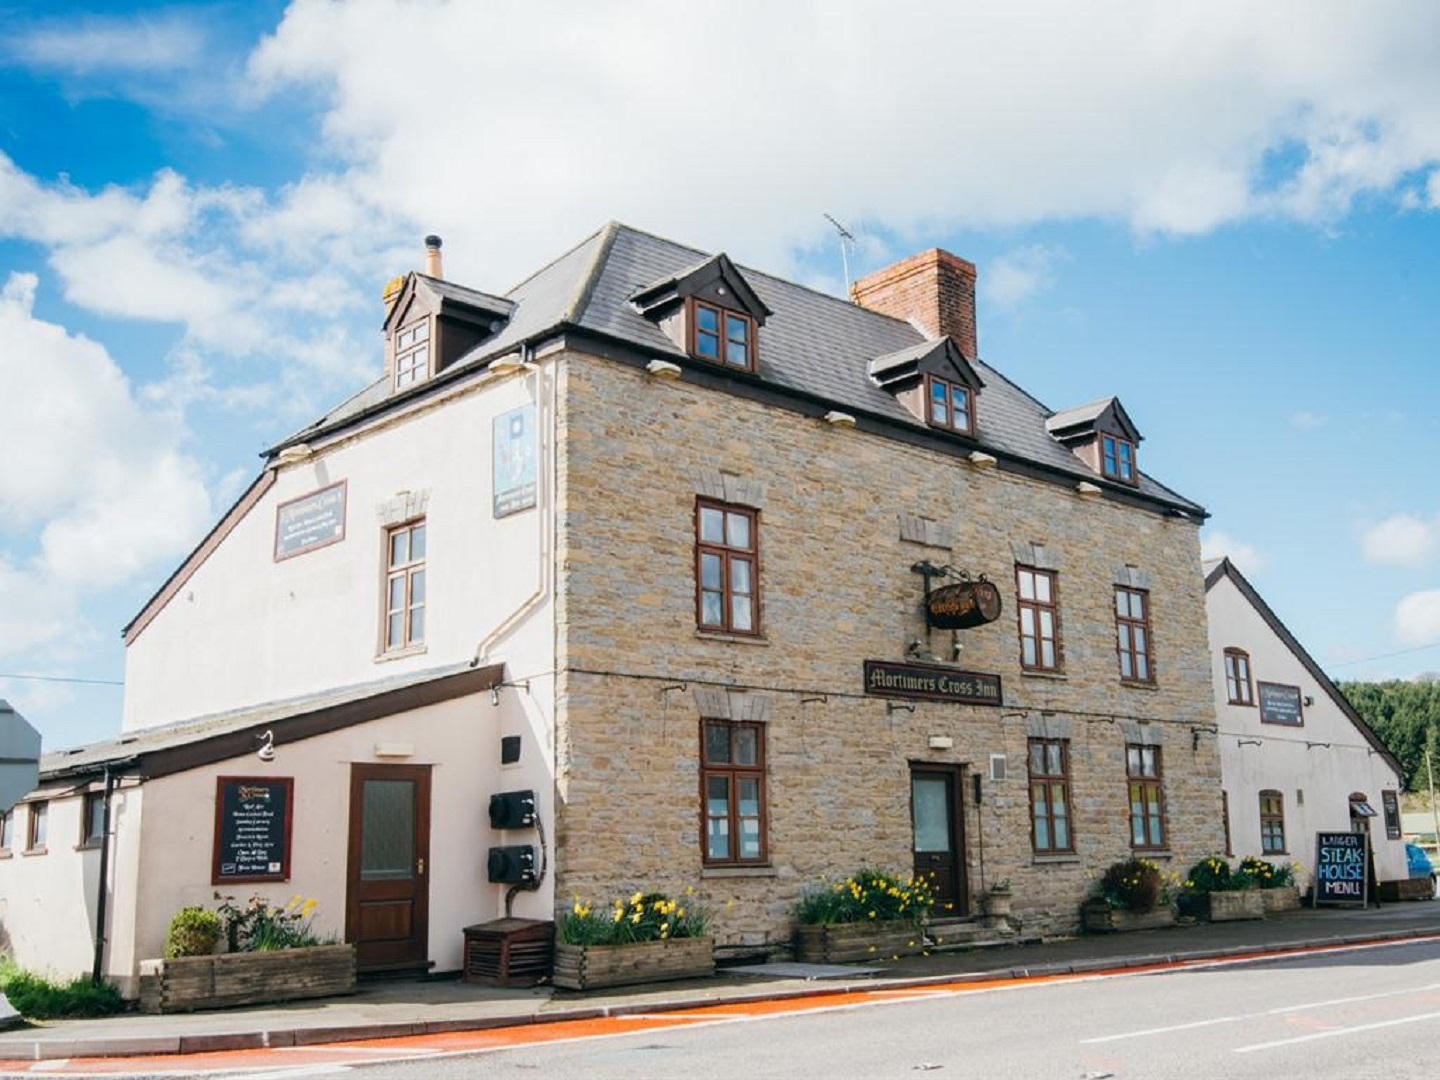 A large brick building at Mortimers Cross Inn.